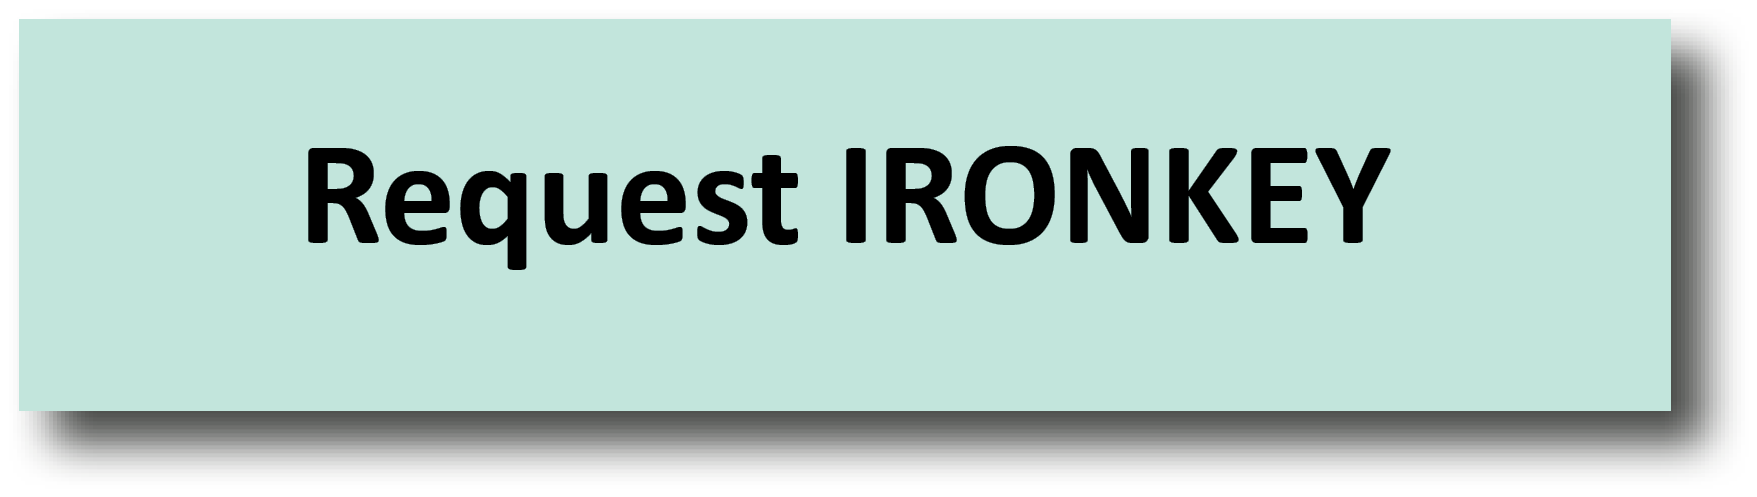 ironkeyrequest